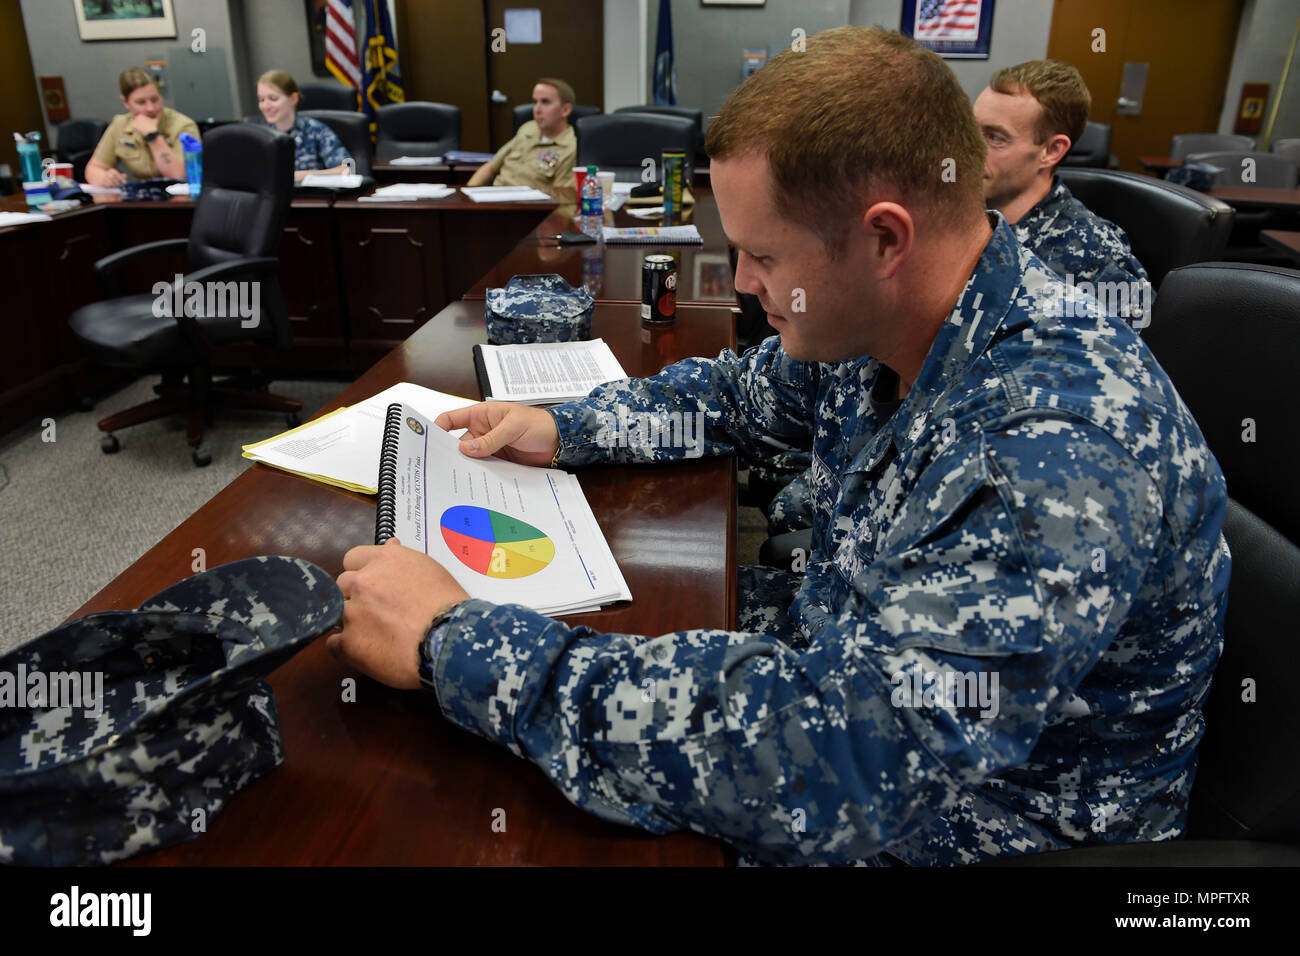 170309-N-FI568-037  PENSACOLA, Fla. (March 9, 2017) Cryptologic Technician (Interpretive)(CTI) 1st Class William Cruz reviews statistics during a biennial occupational standards review for the CTI rating. The occupational standards review process breaks down core tasks, job descriptions, and skills and abilities for each rating. It serves as the basis for all Navy professional development and training tools, such as rate training manuals, personal qualification standards, course curricula and advancement exams.(U.S. Navy photo by Mass Communication Specialist 2nd Class Taylor L. Jackson/Releas - Stock Image